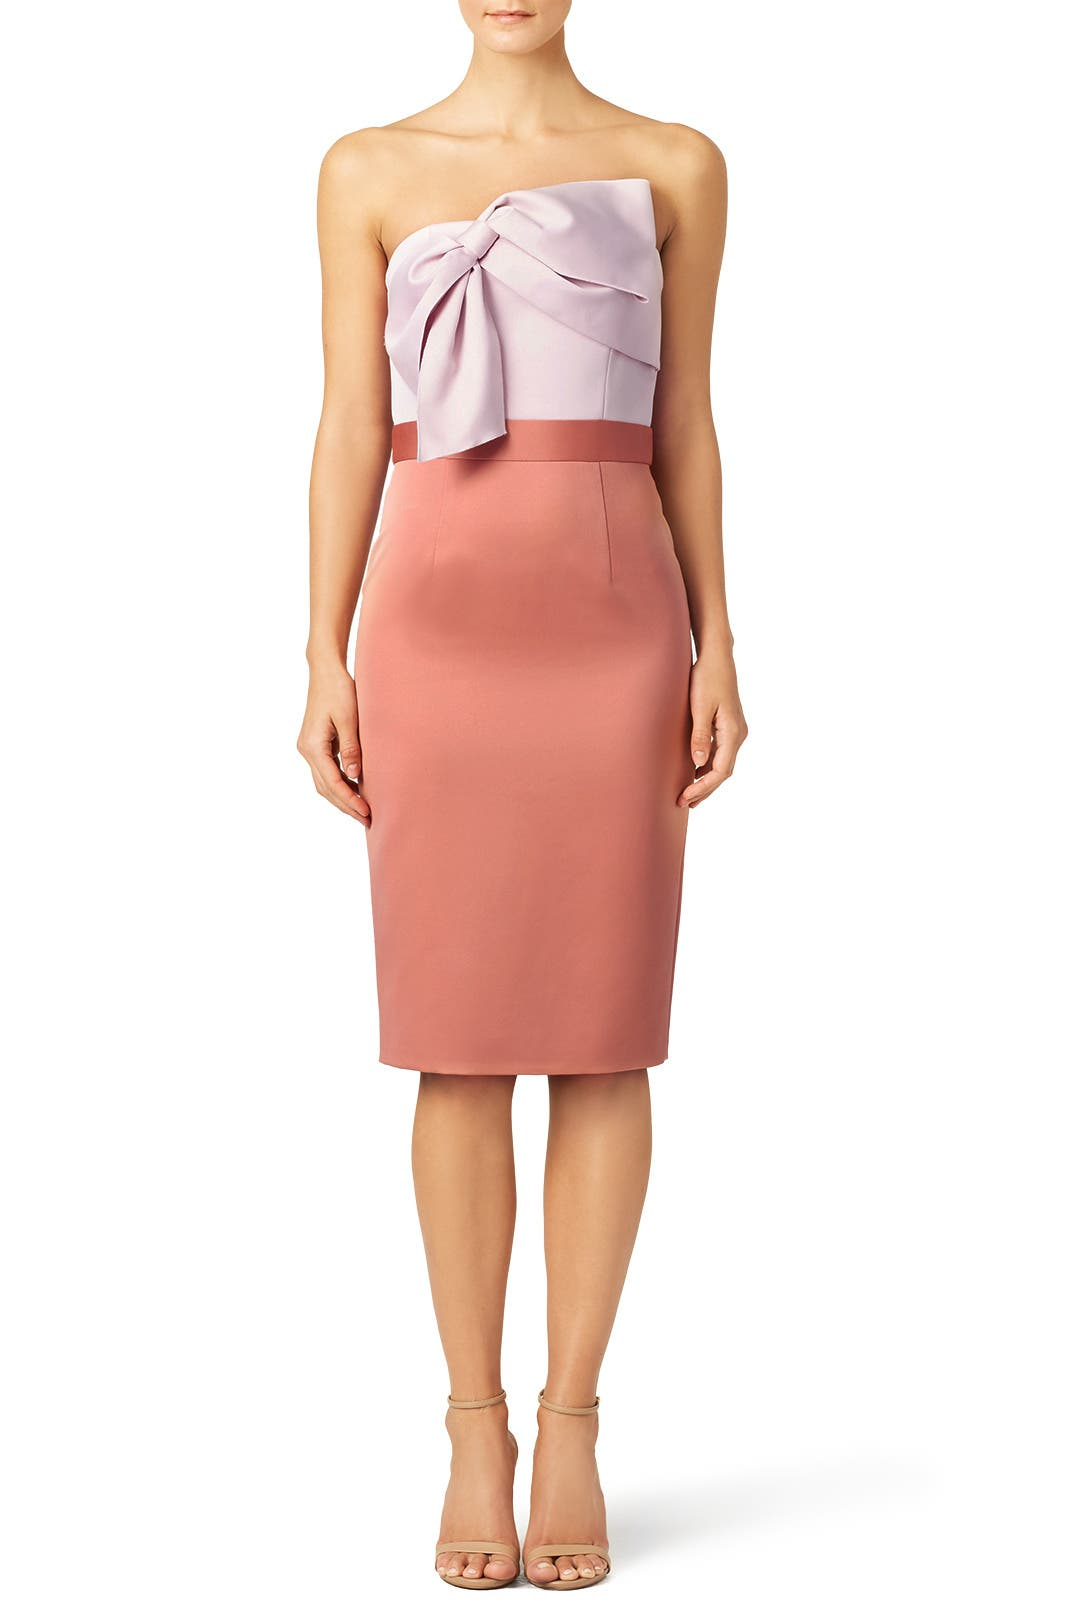 Color Block Twist Sheath By Cynthia Rowley For 65 Rent The Runway